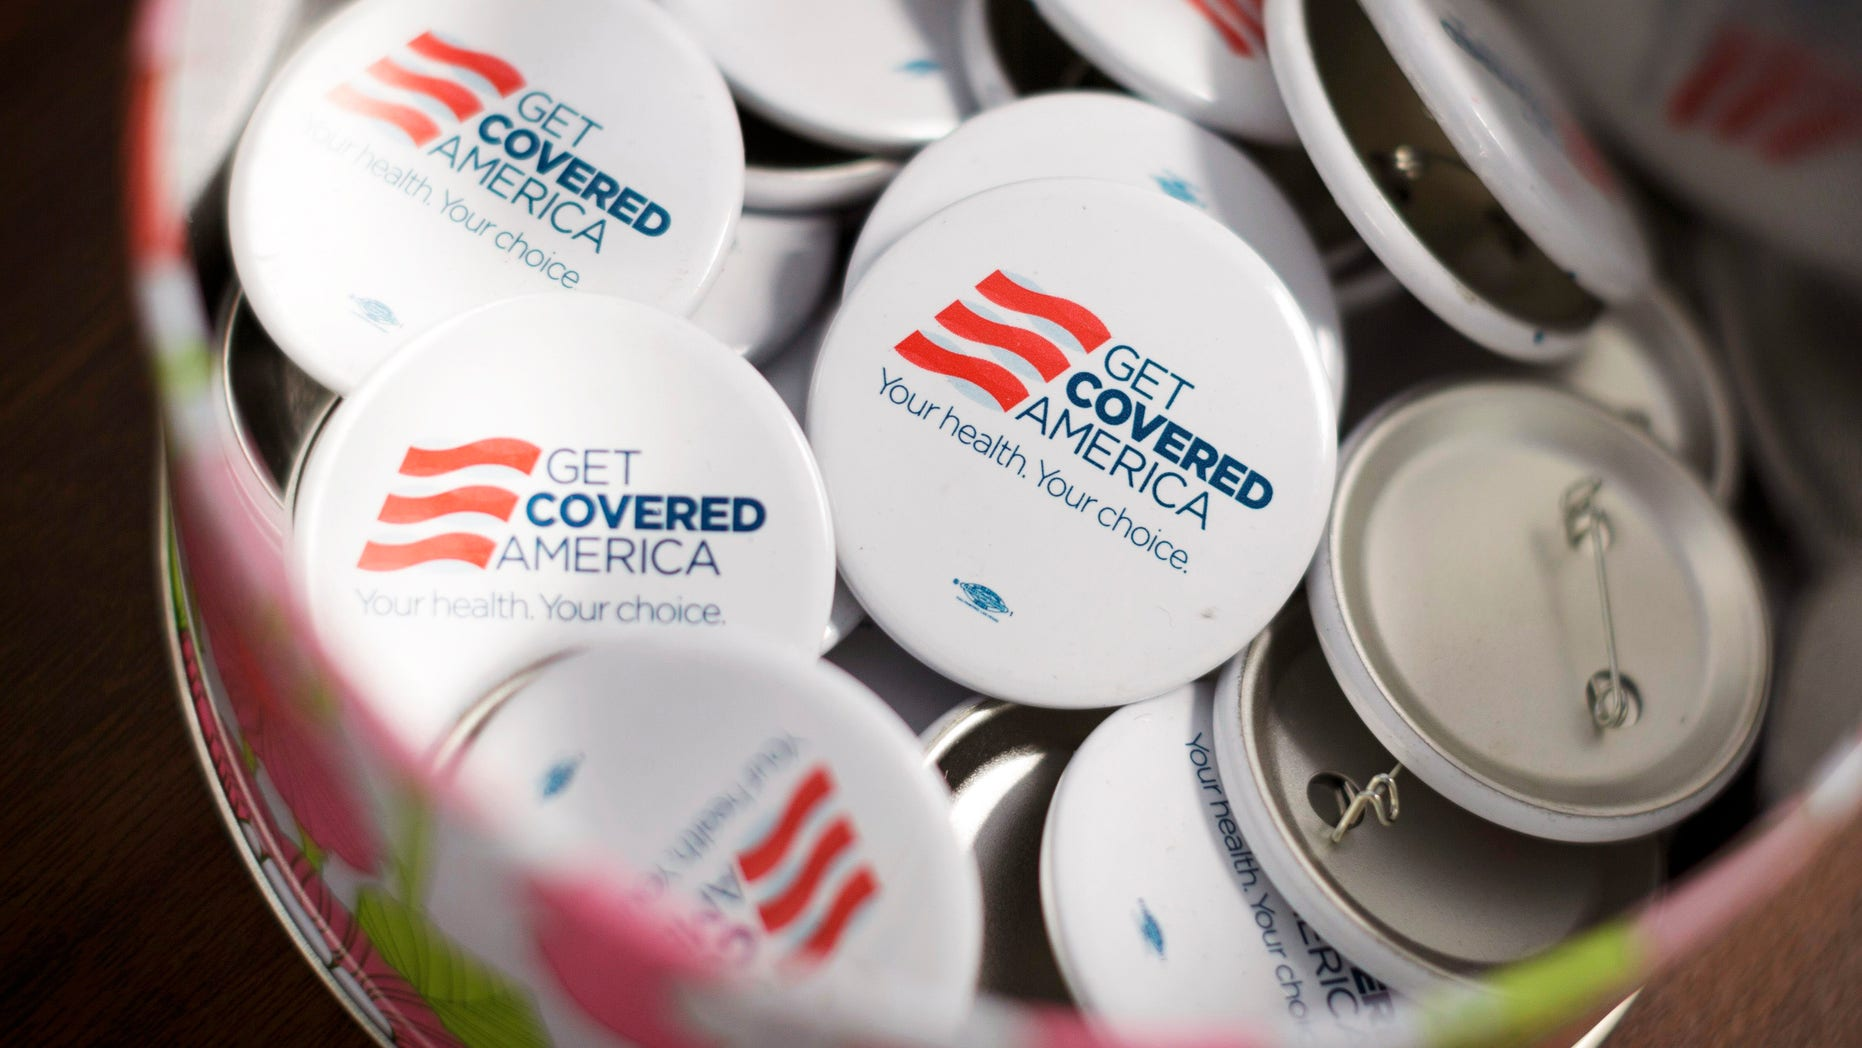 Sept. 7, 2013: Get Covered America buttons are seen during a training session in Chicago, Illinois  before volunteers canvas a Chicago neighborhood to talk with residents about the Affordable Care Act .